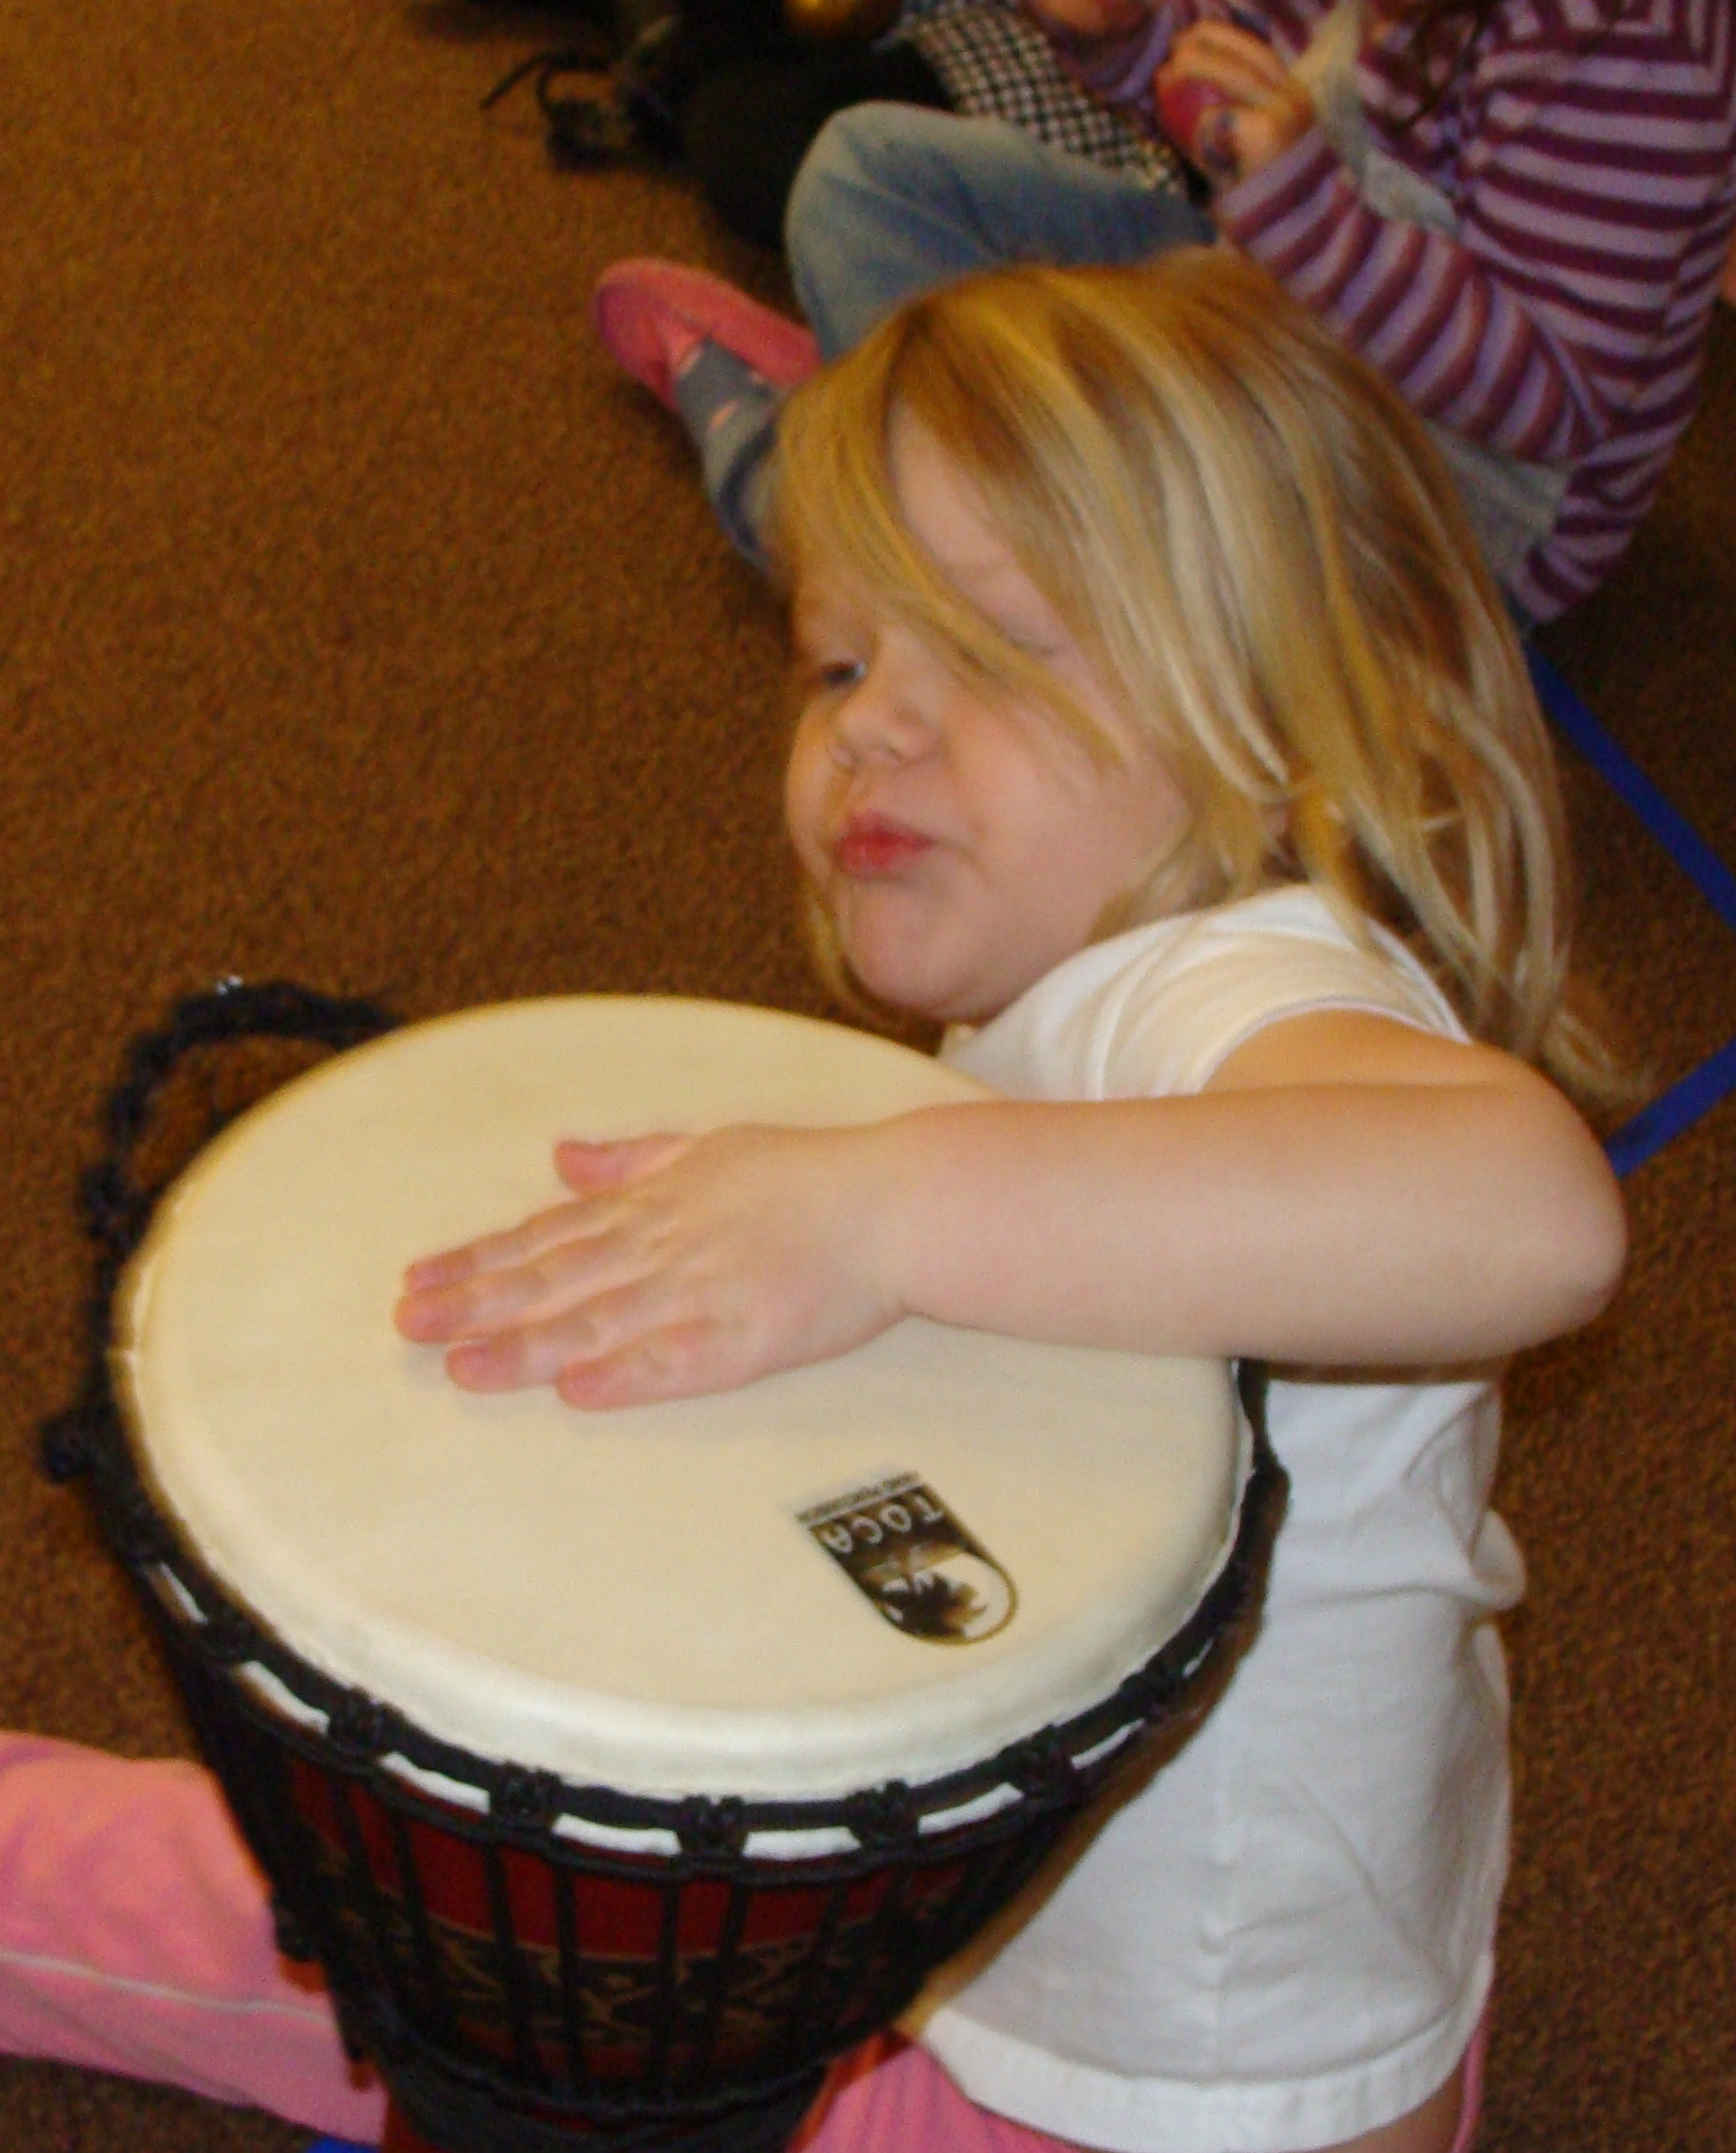 KIds_my_drum (1).JPG